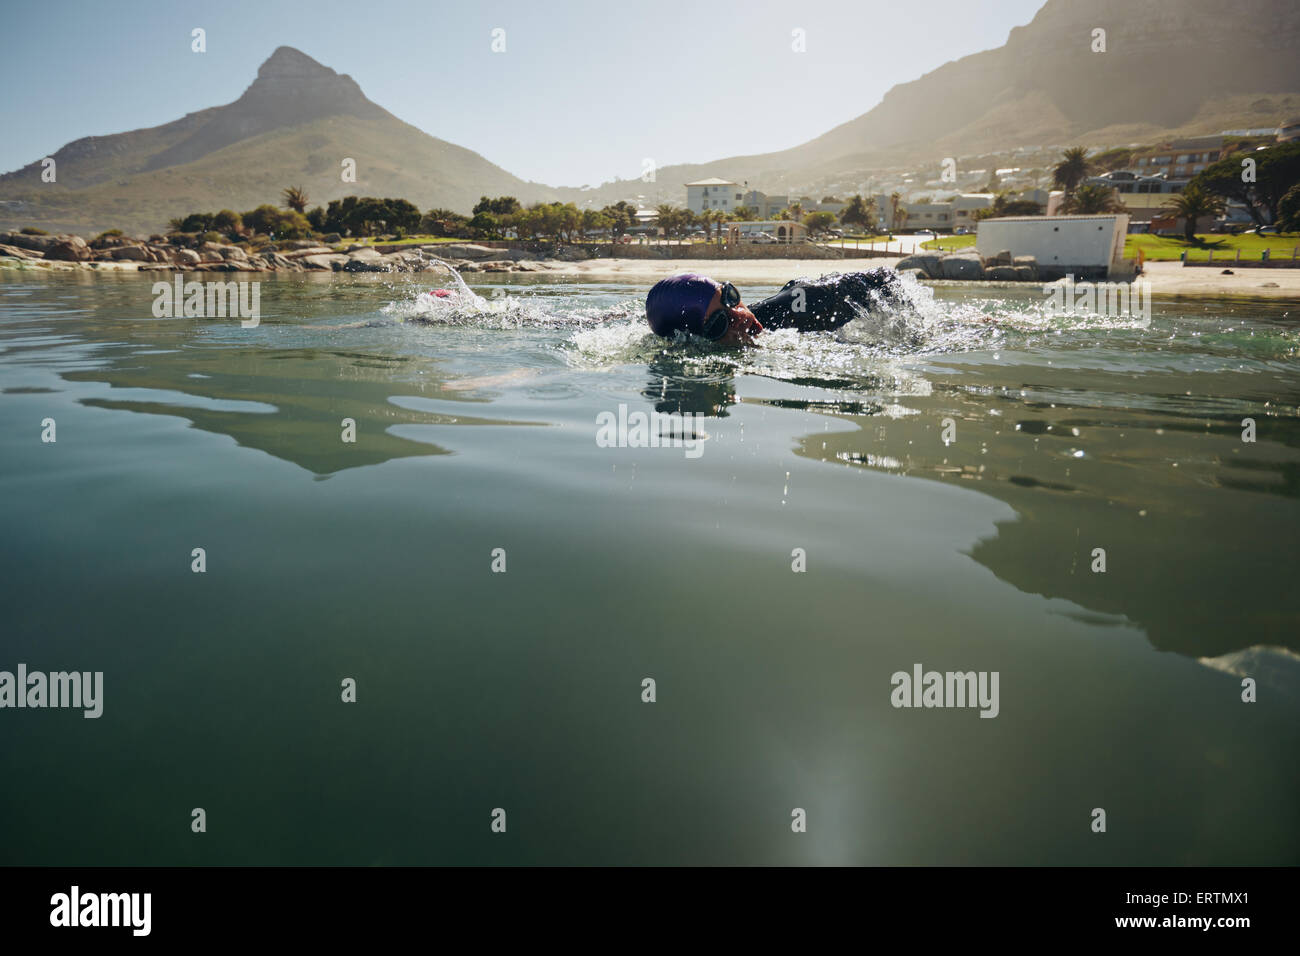 Male athlete swimming in open water. Athlete practicing for the triathlon competition. Stock Photo